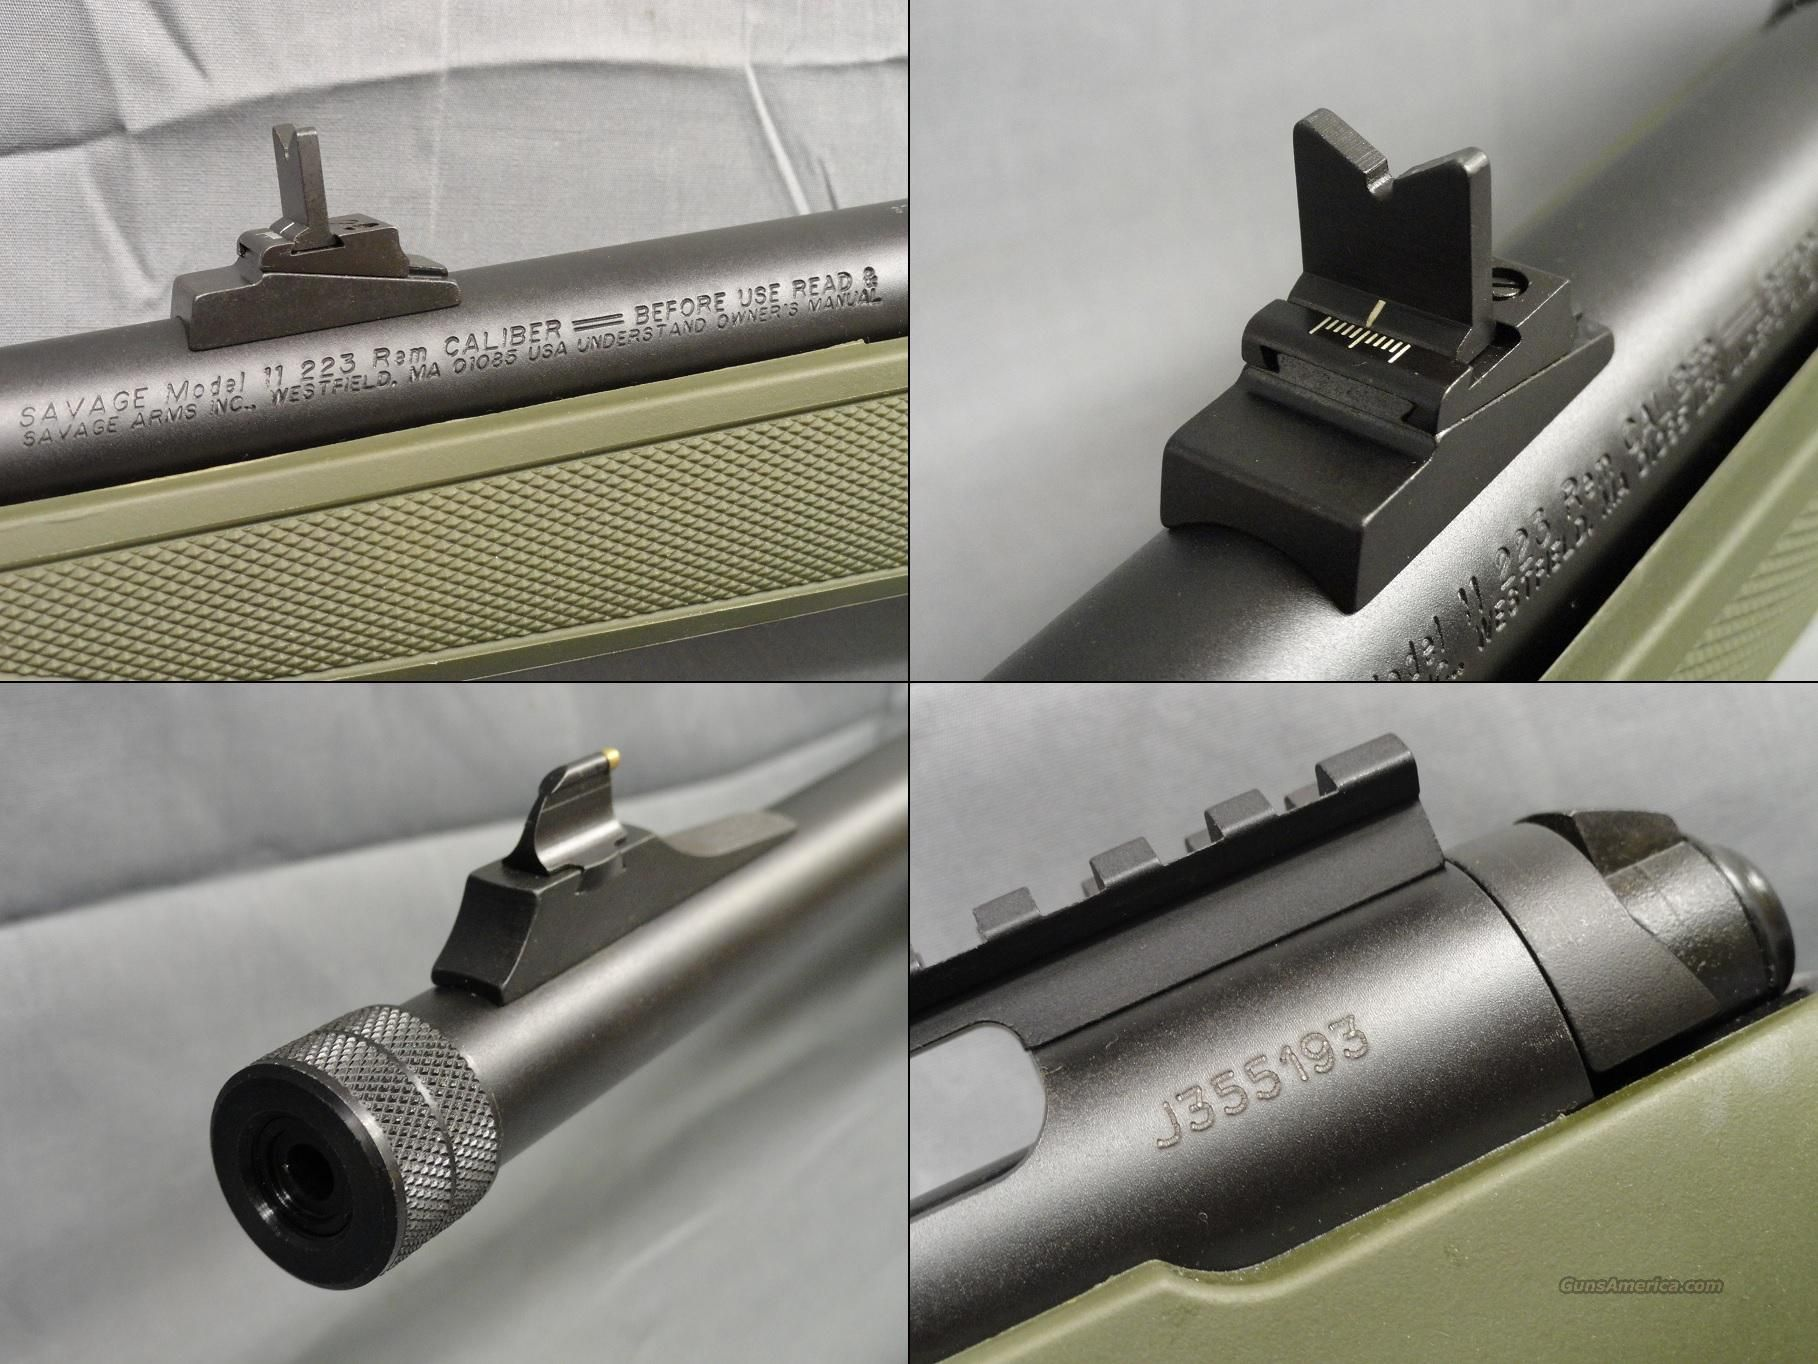 Pin by RAE Industries on savage arms | Bolt action rifle, Savage